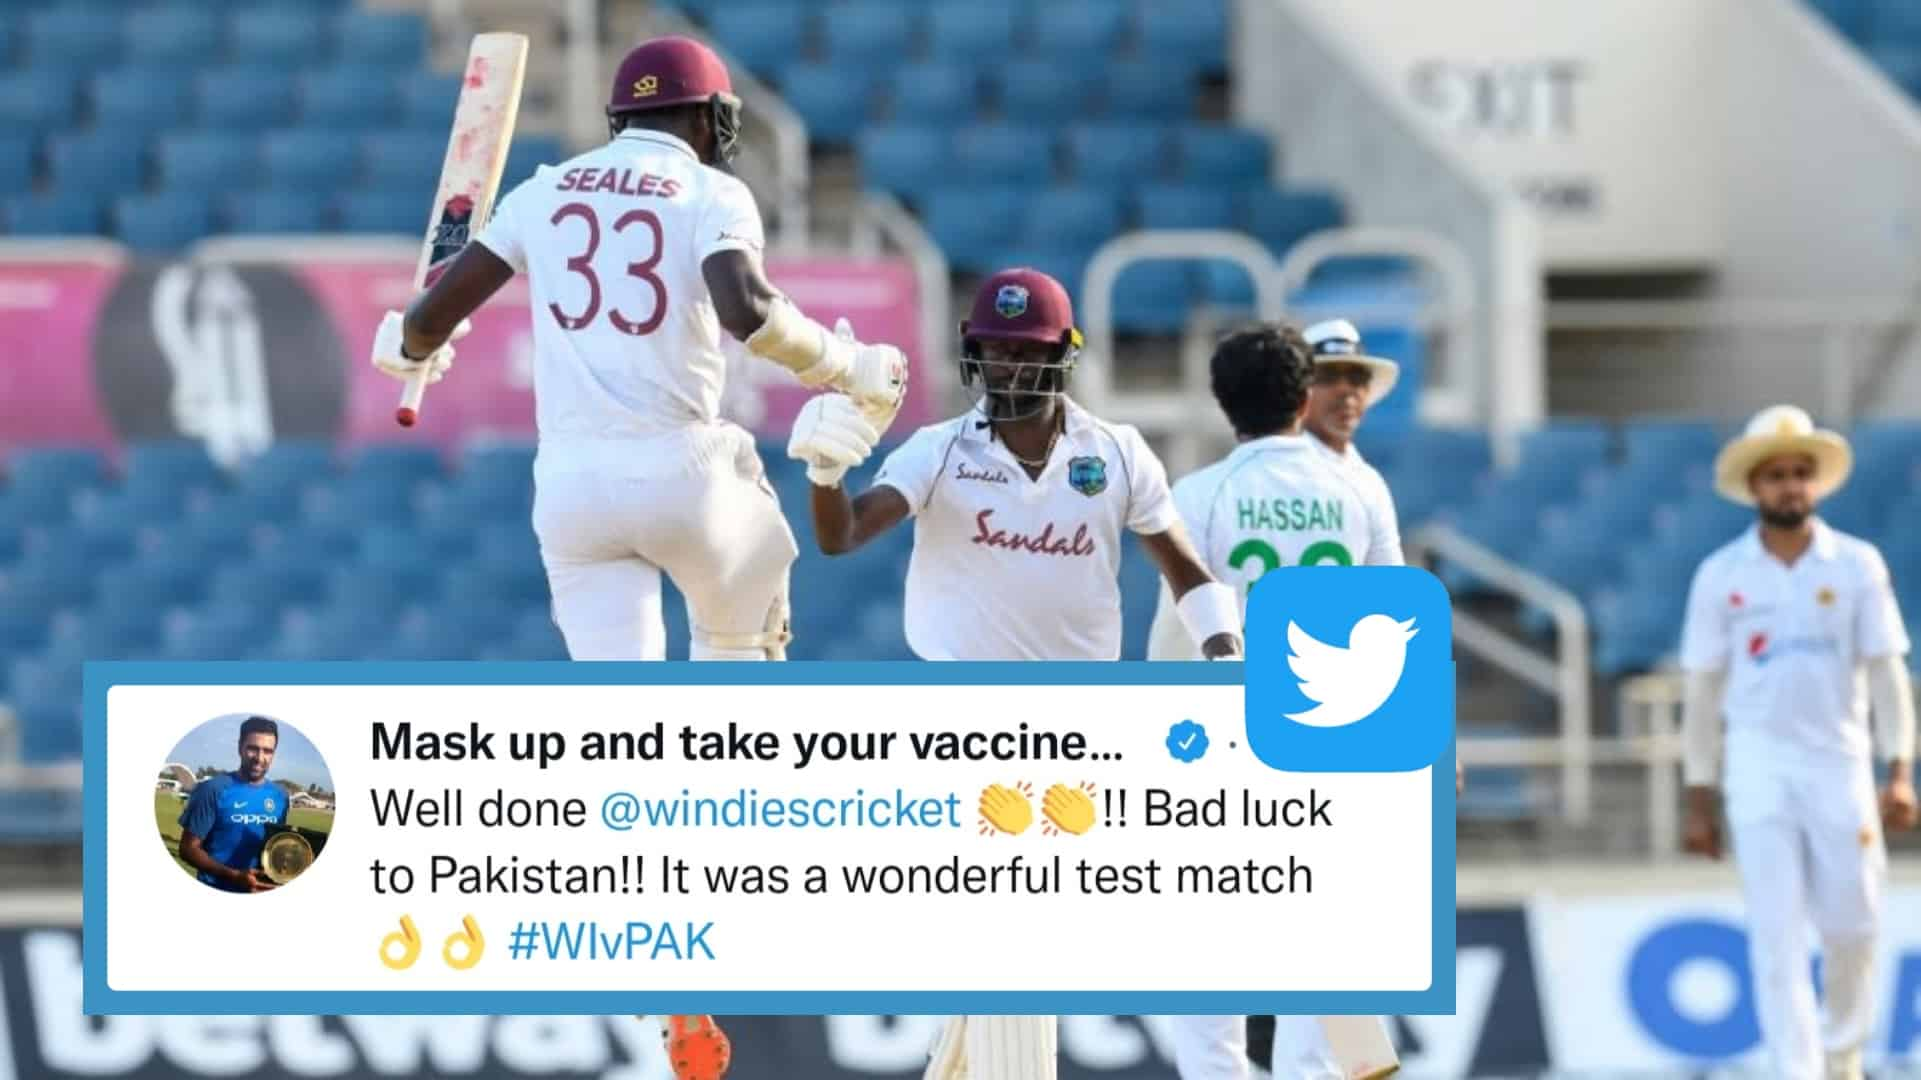 WI vs PAK: Twitter Reacts As West Indies Thrashed Pakistan By 1 Wicket In A Thrilling Way